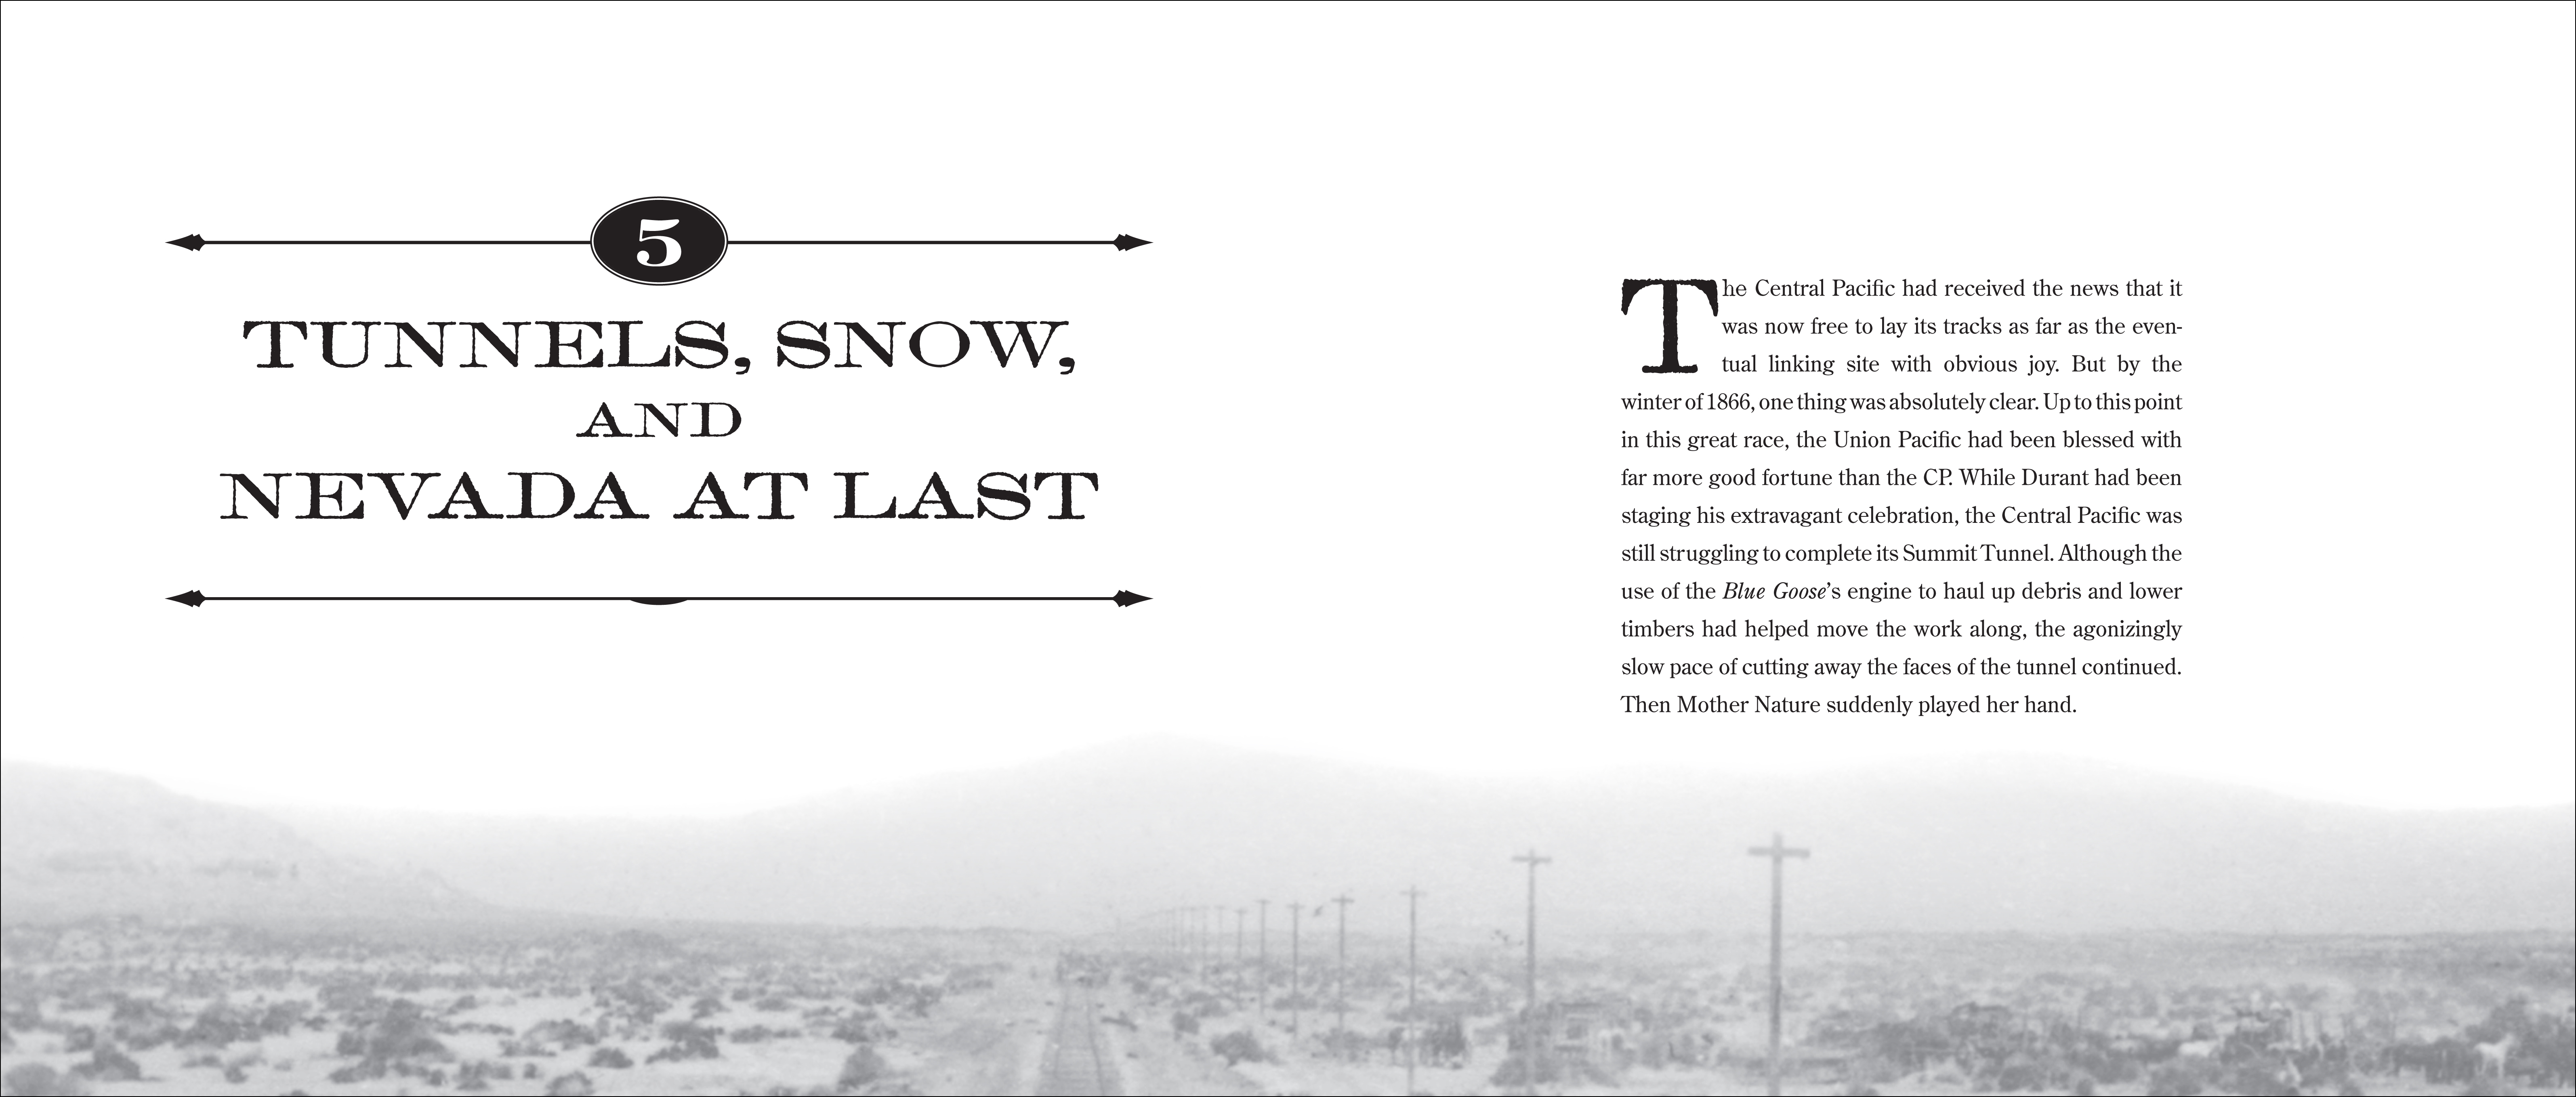 Chapter opener spread for IRON RAILS, IRON MEN, AND THE RACE TO LINK THE NATION